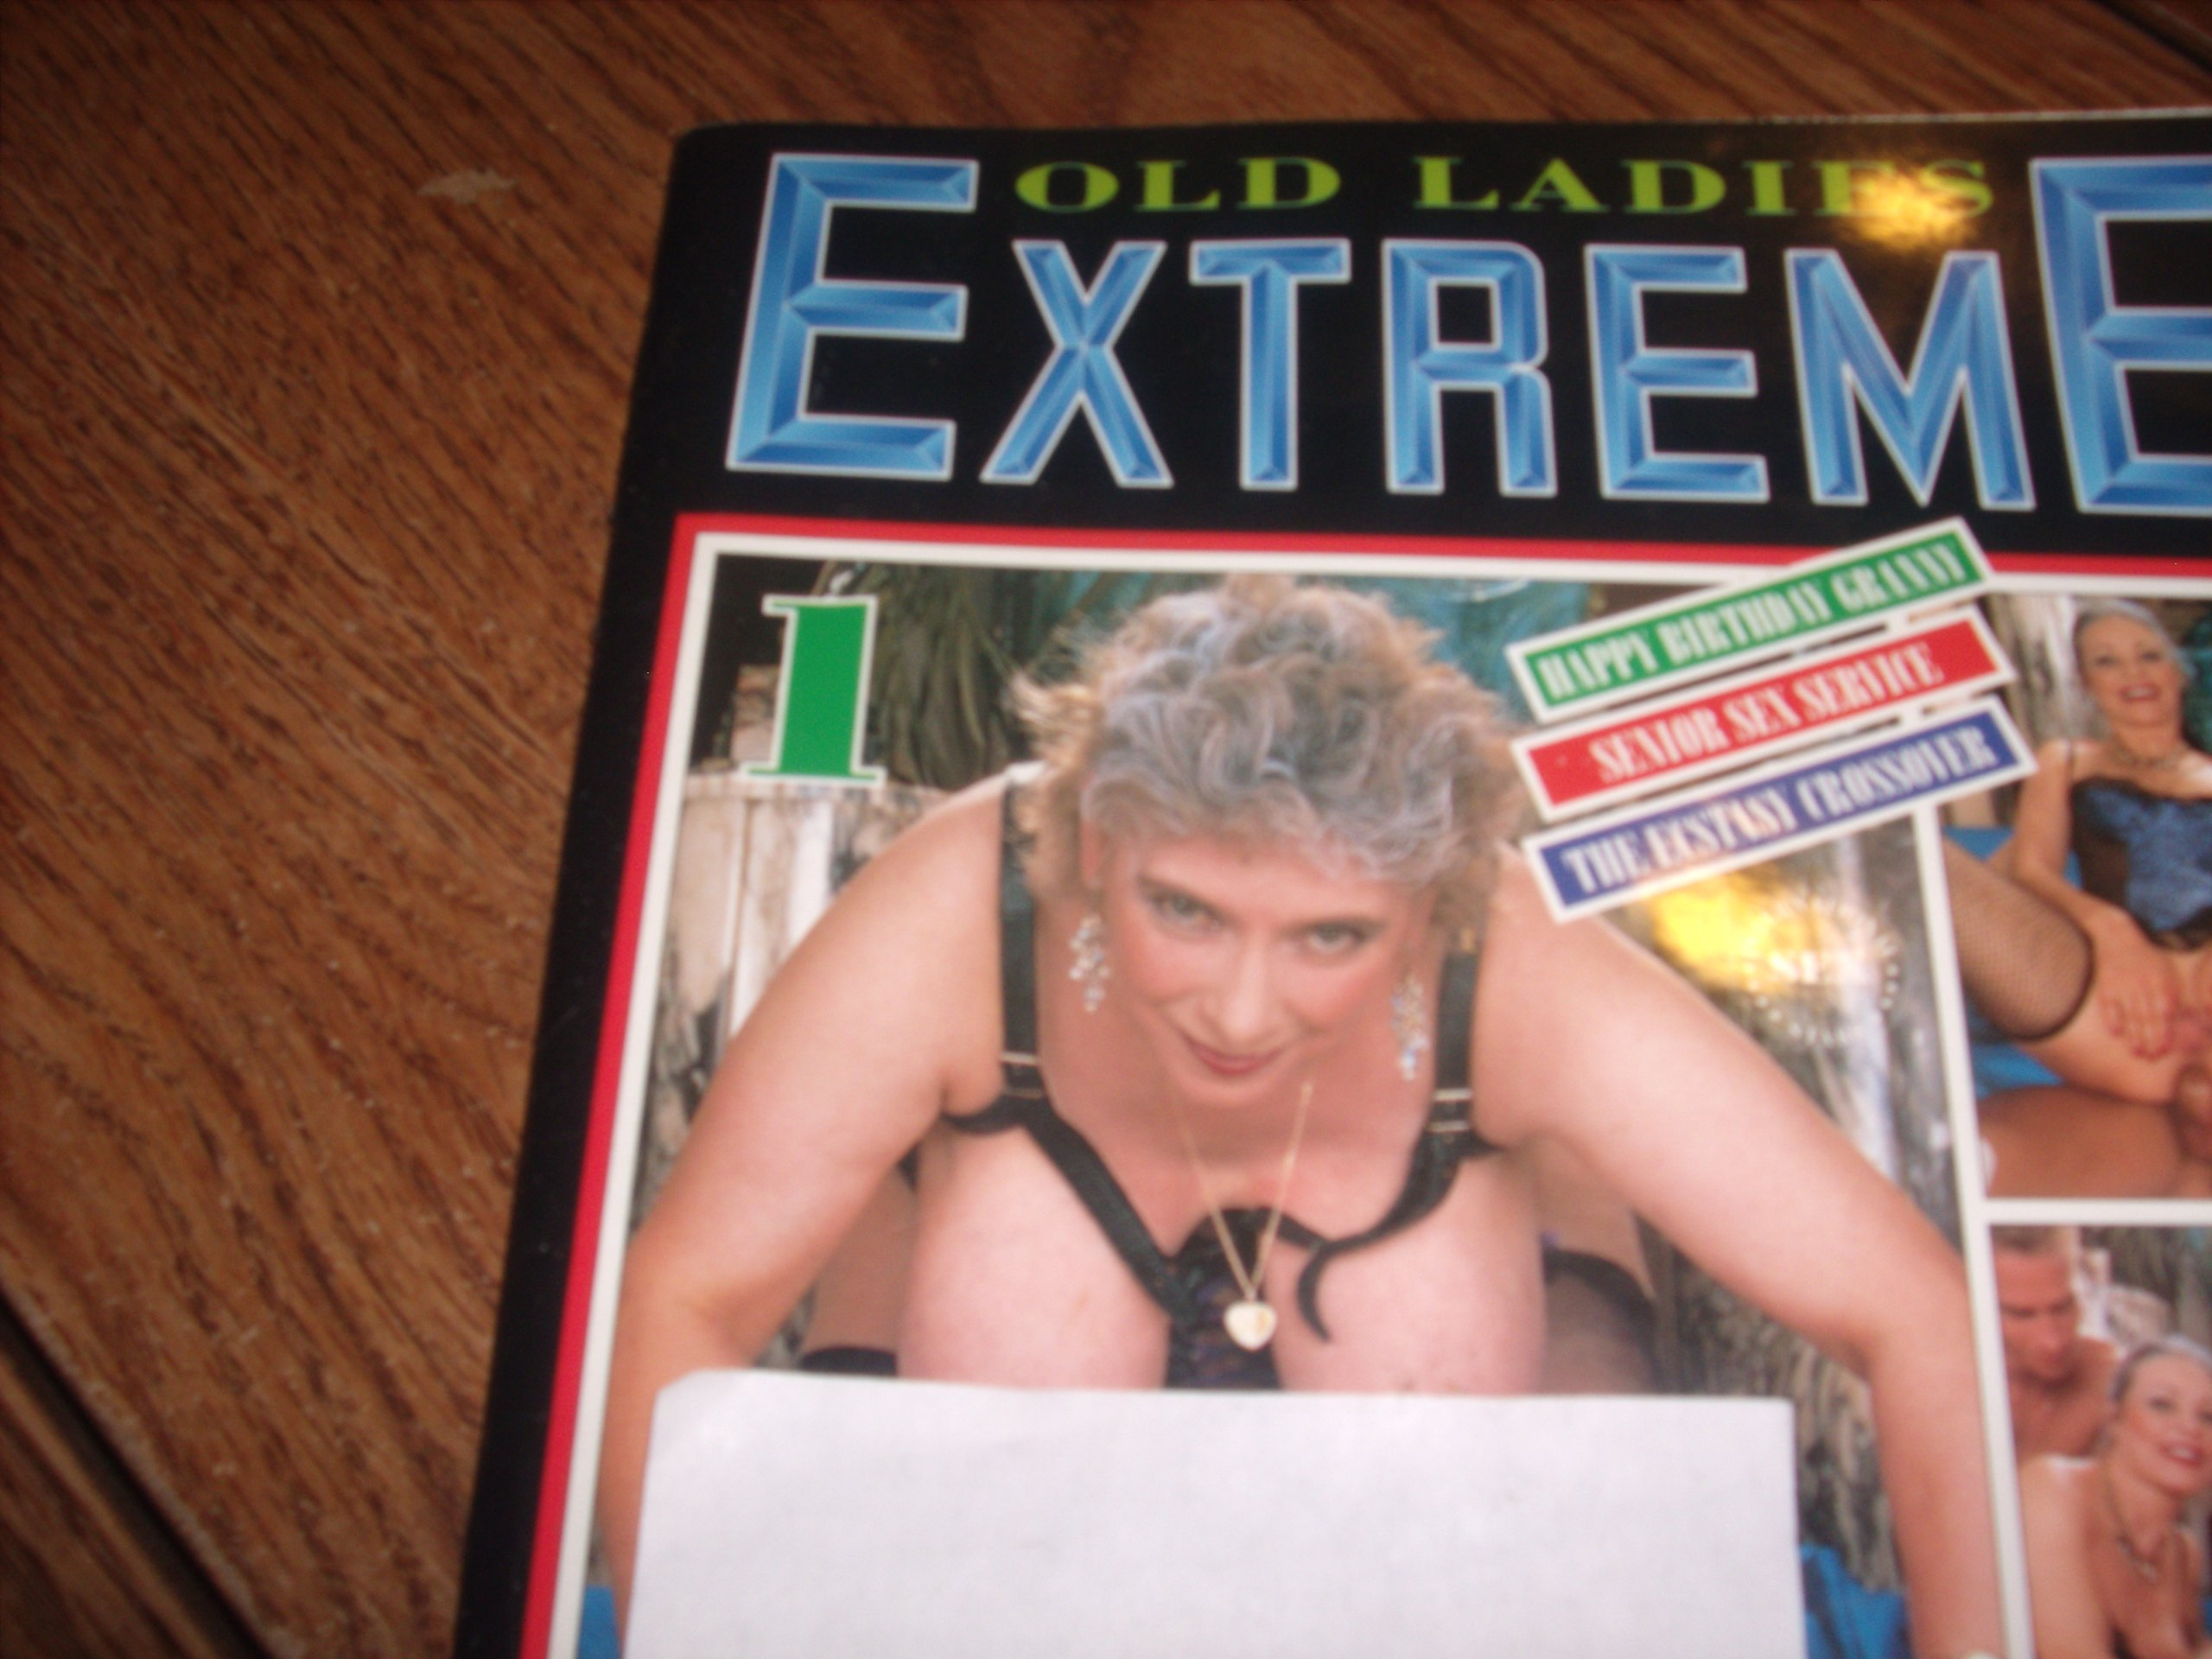 Old ladies extreme